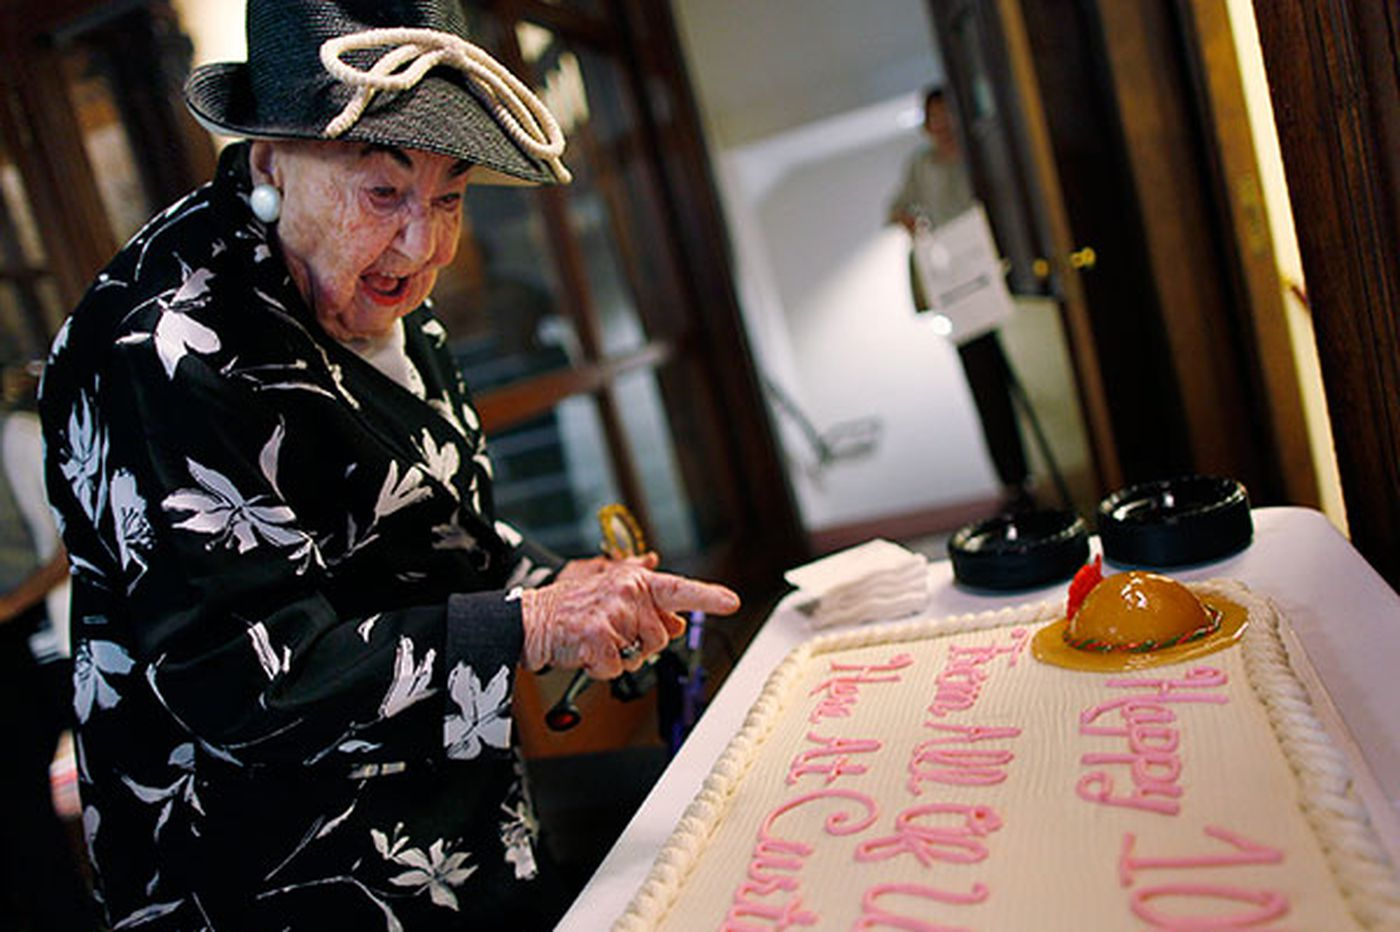 At Curtis, she came, she stayed - for 83 years